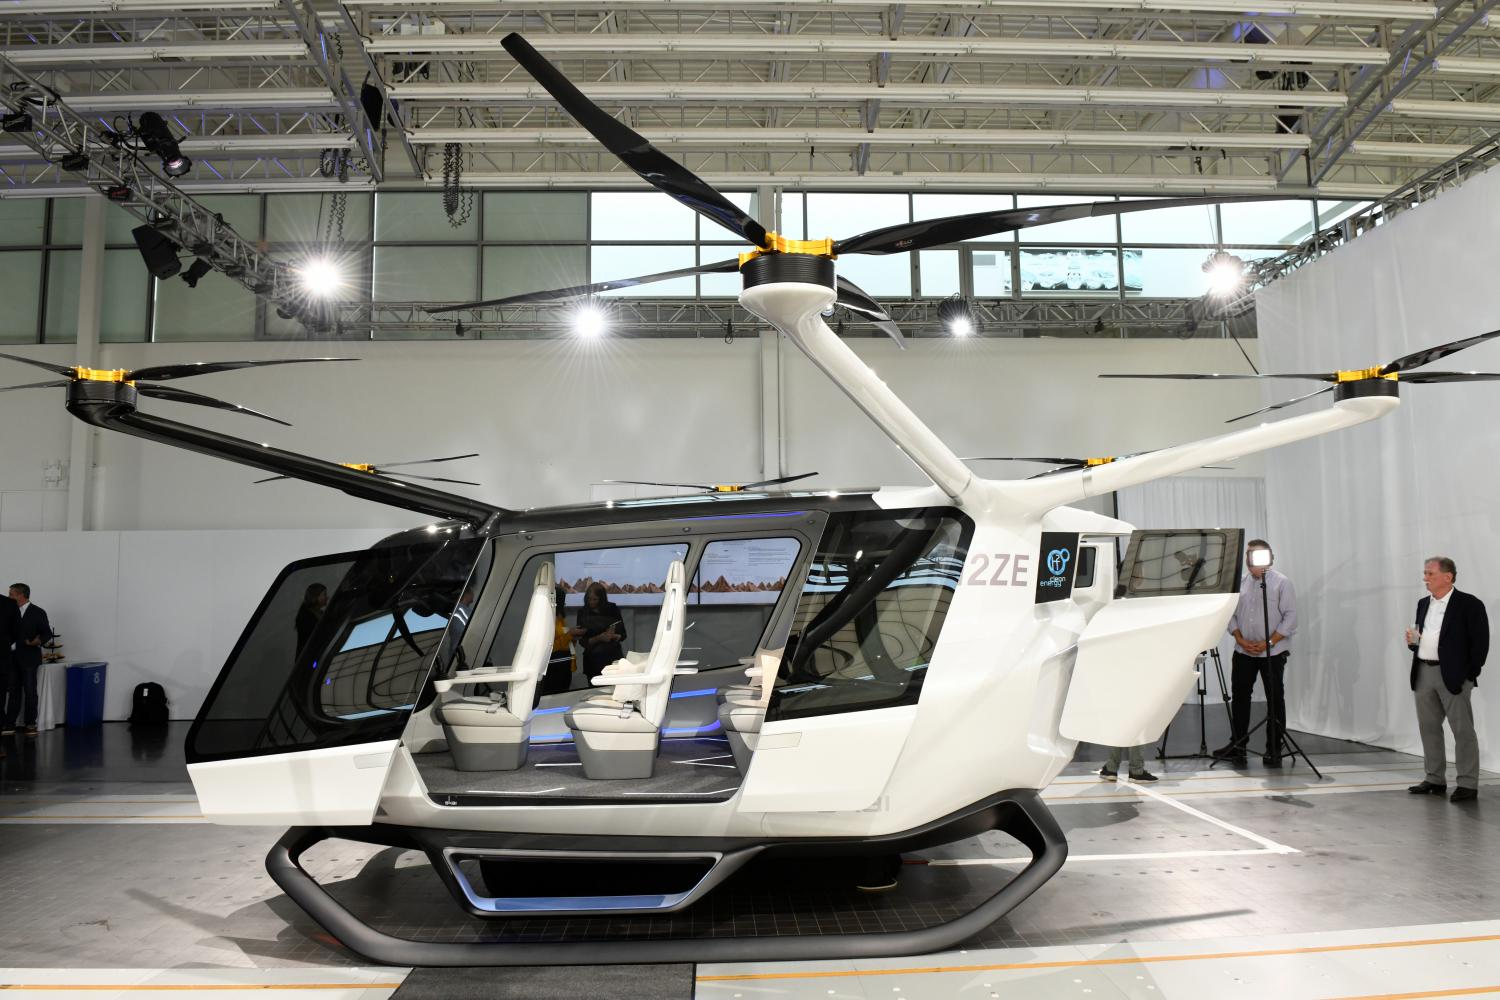 A passenger model of Skai is unveiled at the BMW Designworks offices in Newbury Park, California on Wednesday. (Reuters photo)